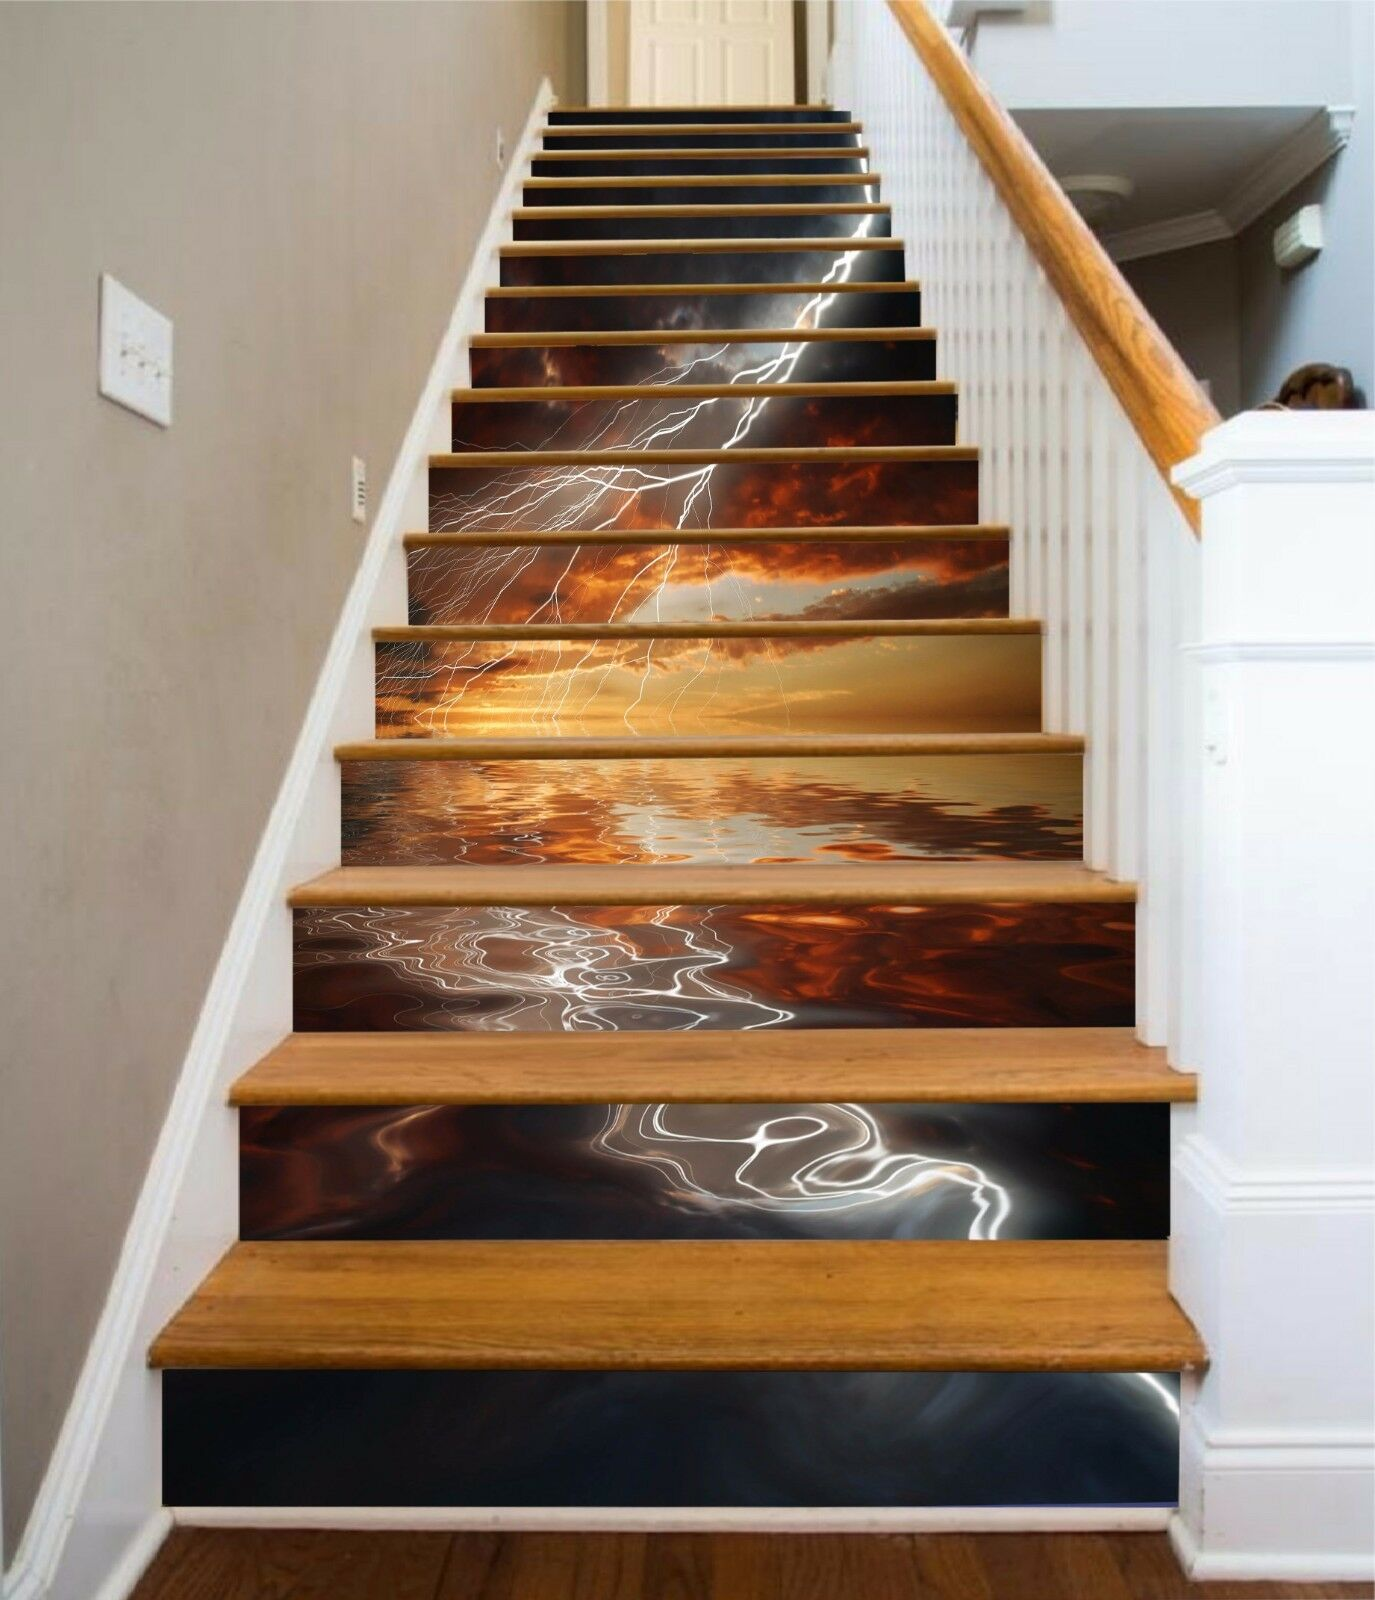 3D Lightning 678 Stair Risers Decoration Photo Mural Vinyl Decal Wallpaper UK